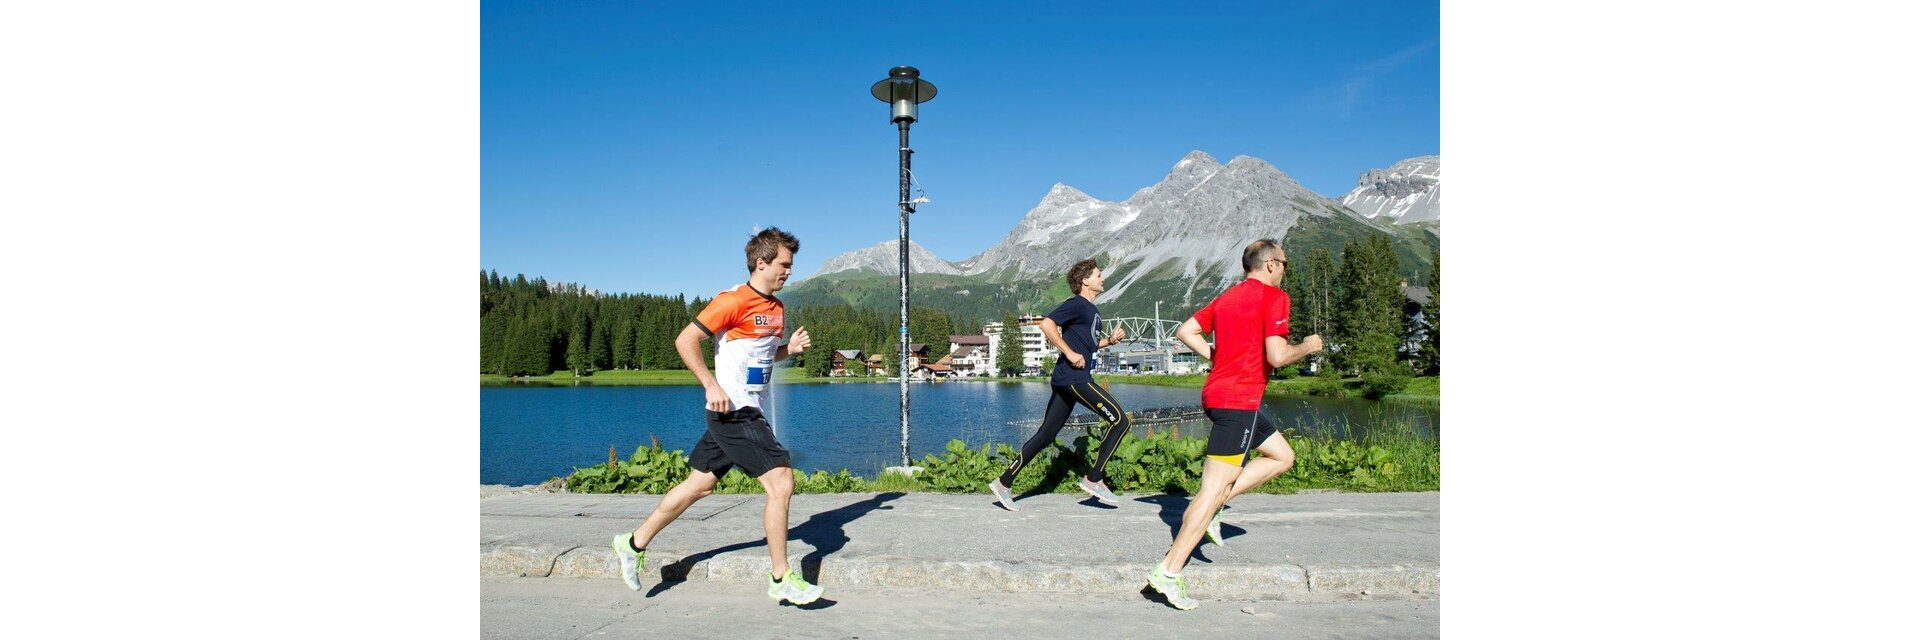 Arosa Summer Running Days Arosa Lenzerheide